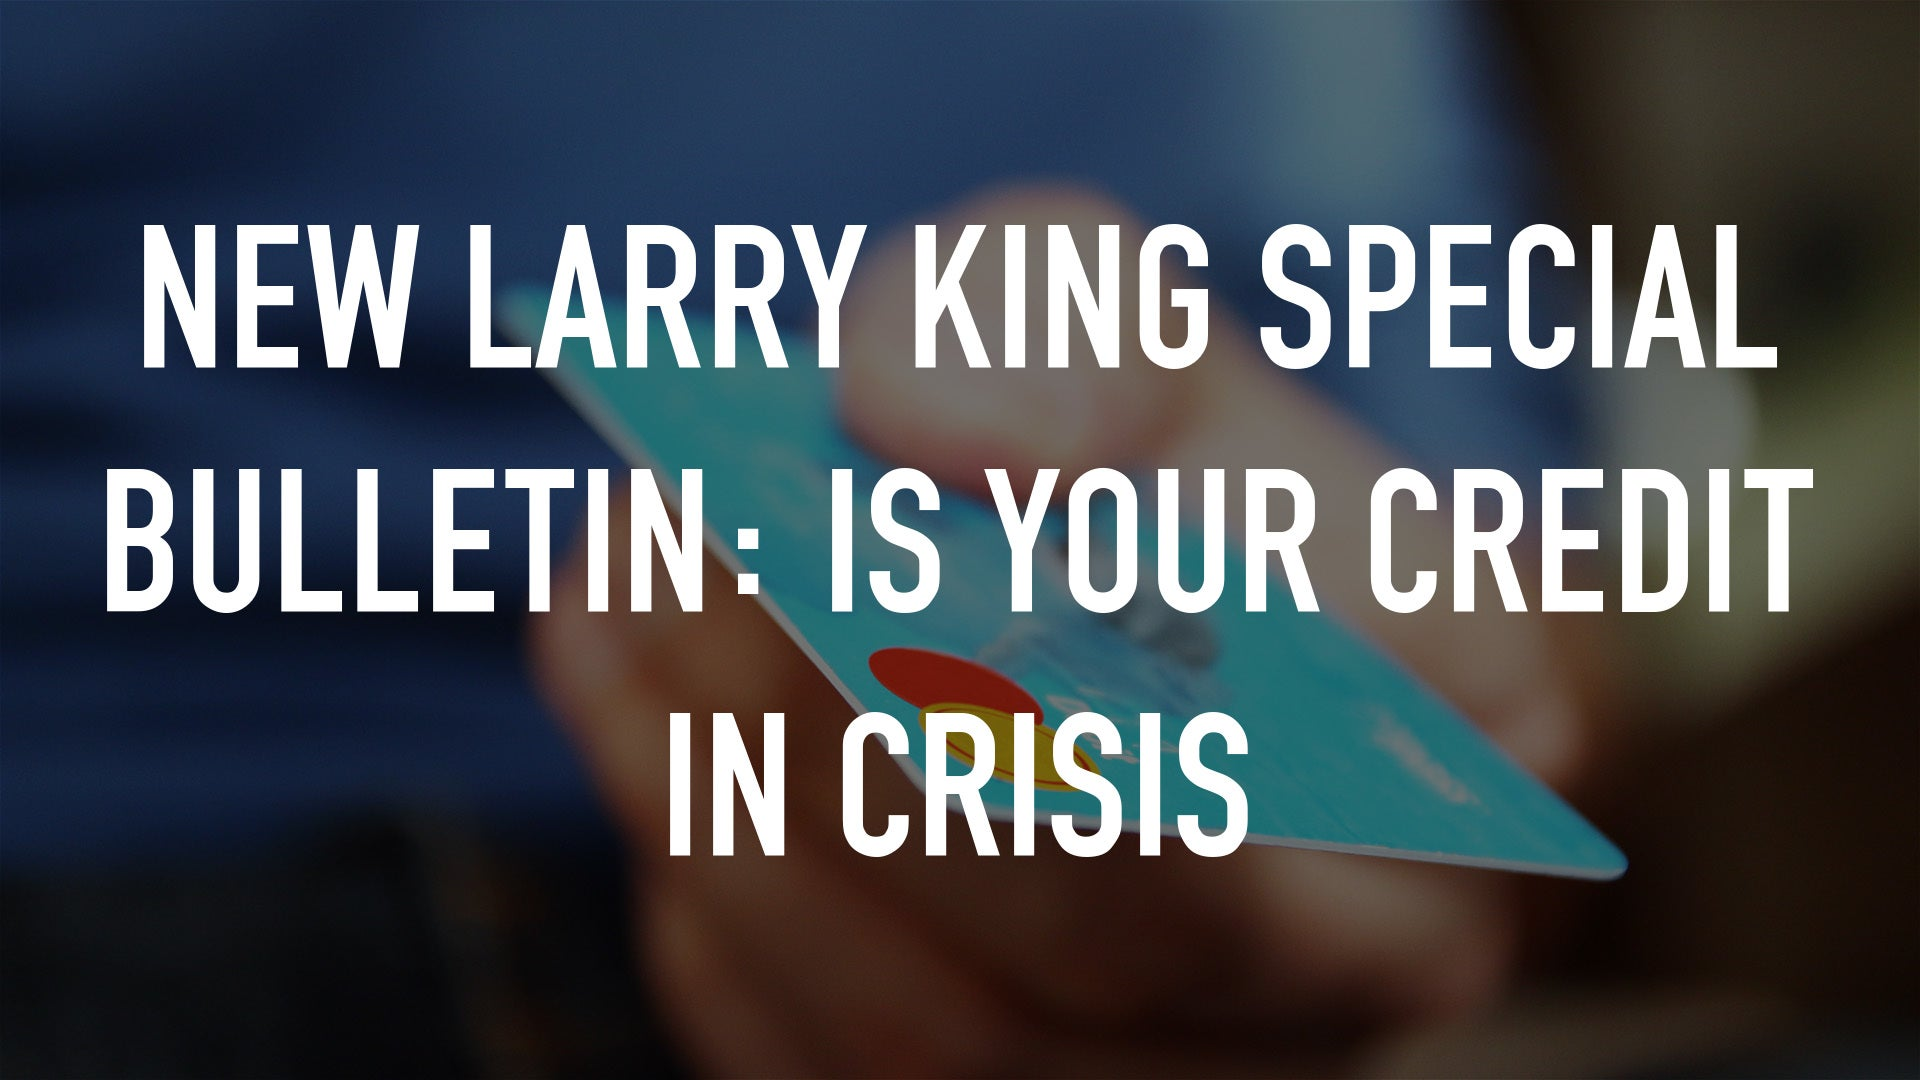 New Larry King Special Bulletin: Is Your Credit In Crisis